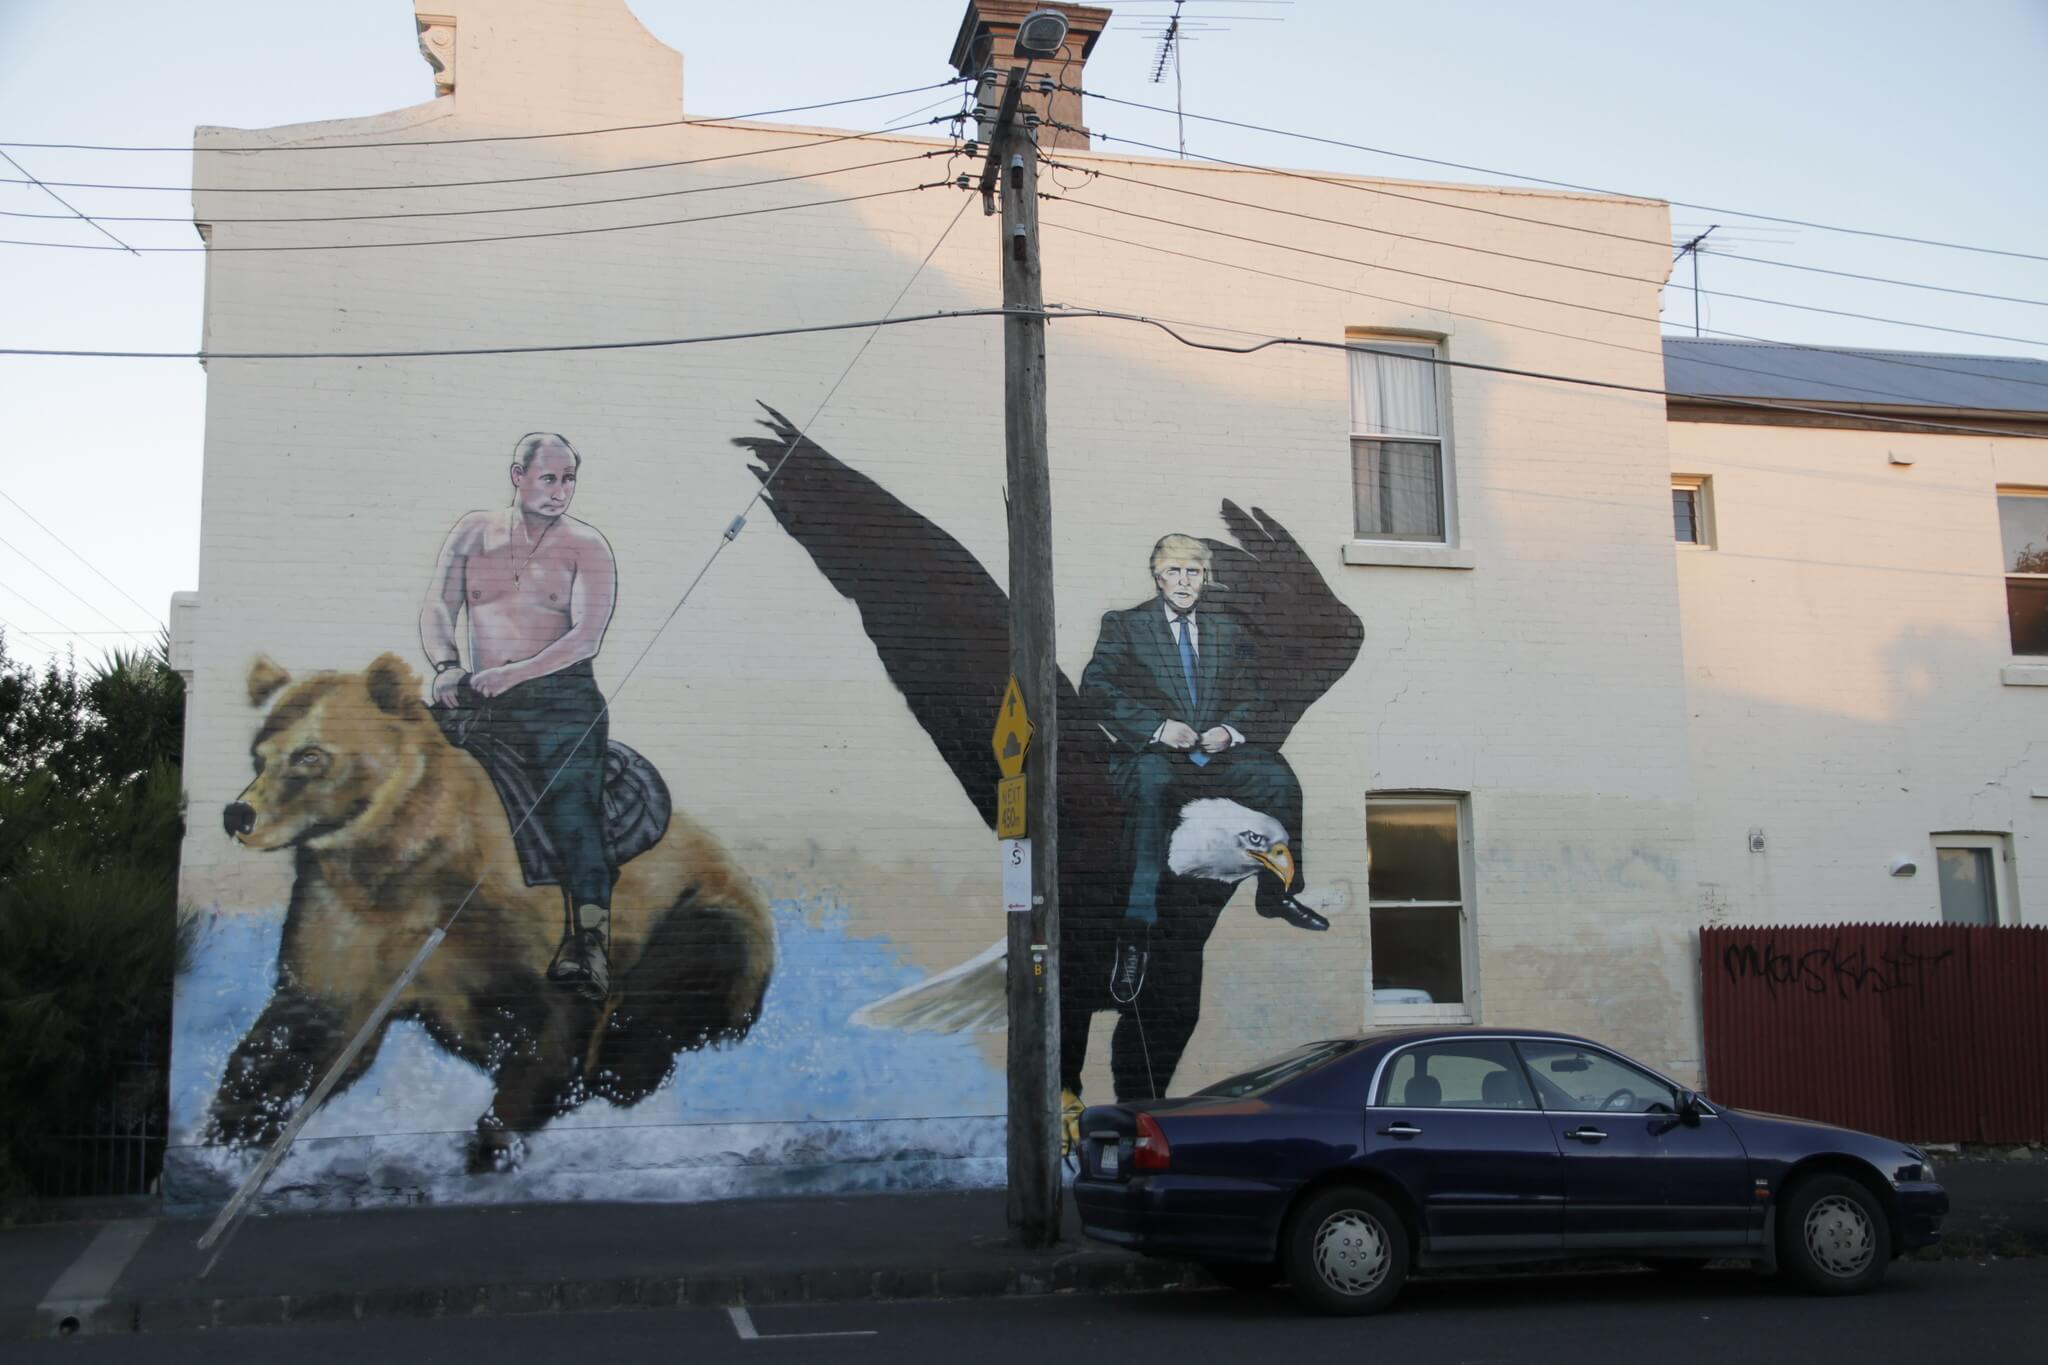 Putin and Trump mural in Brunswick, US. Gavin Anderson - Flickr